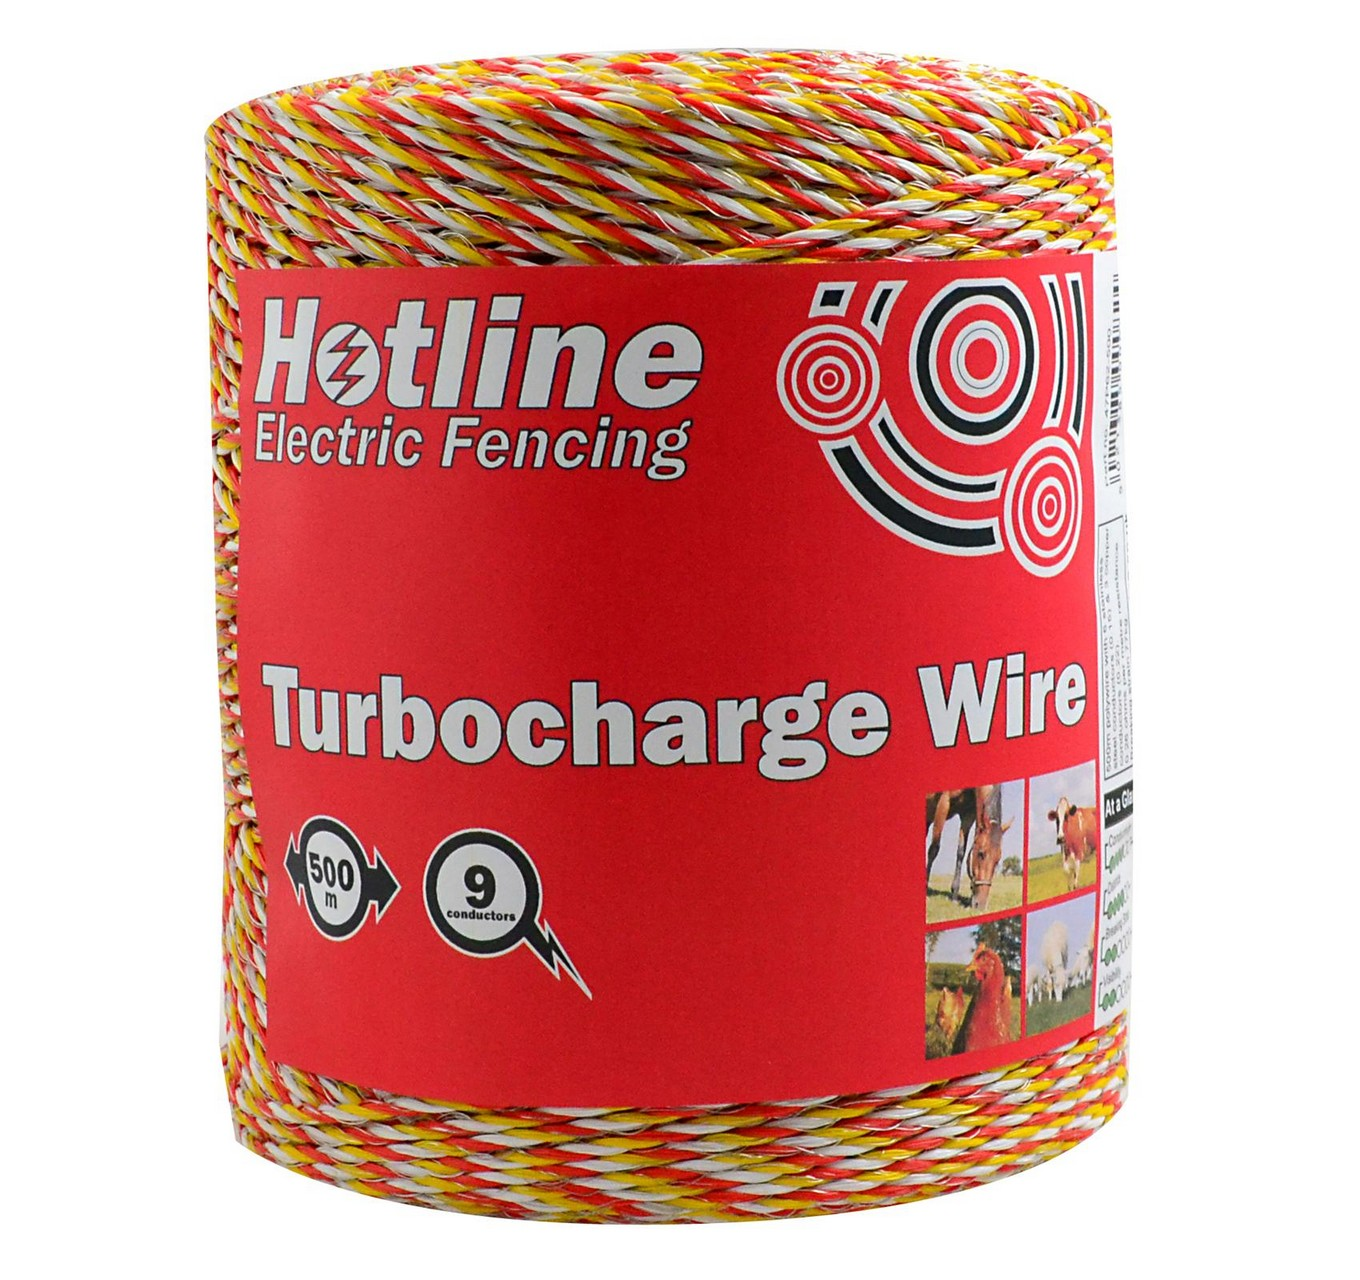 Supercharge Wire 9 Strand 500m